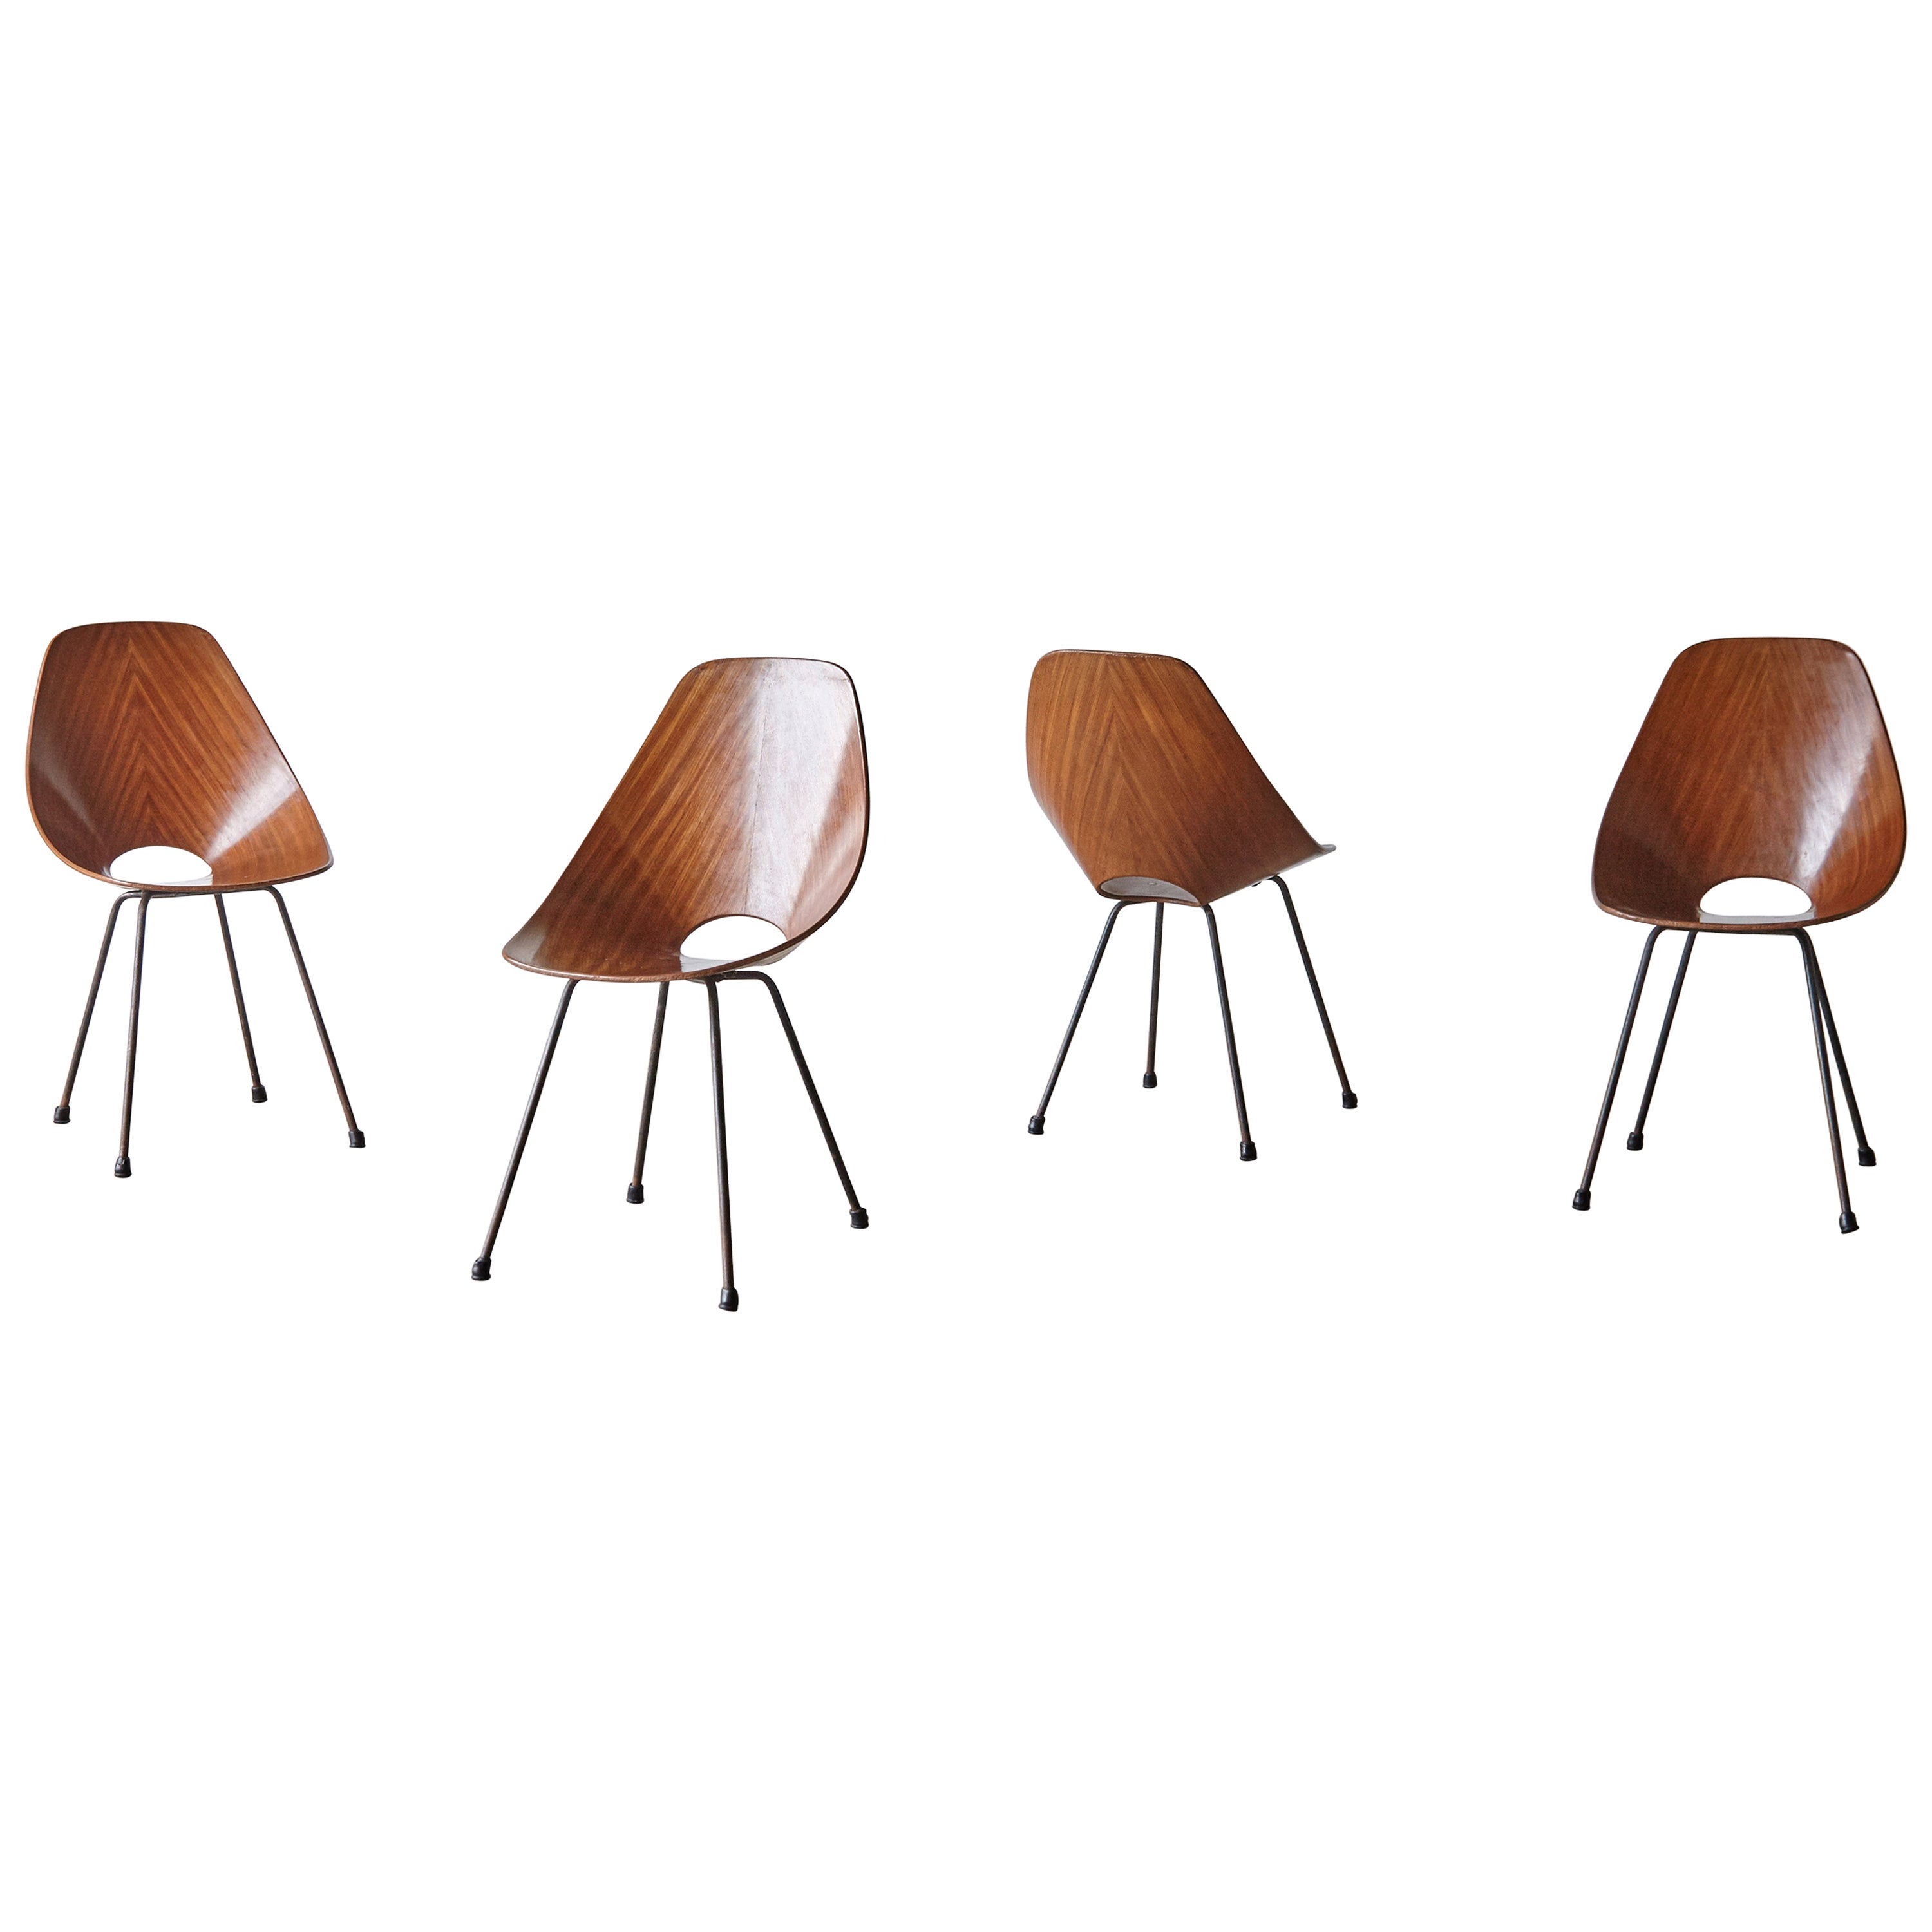 Set of Four Medea Chairs by Vittorio Nobili, Fratelli Tagliabue, Italy, 1950s